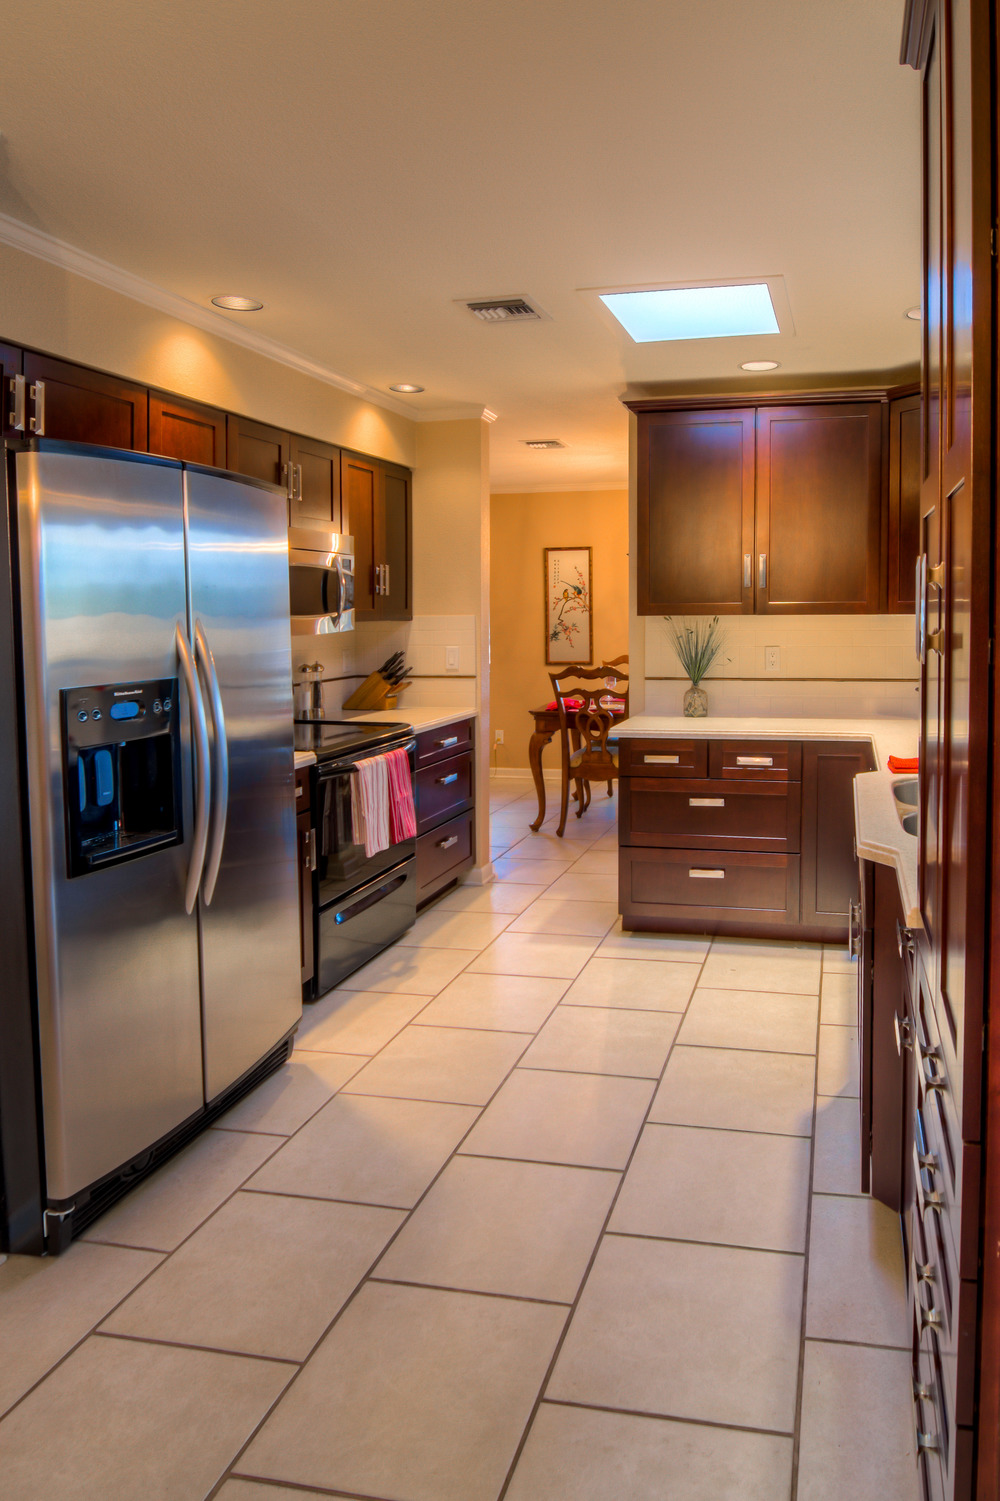 16 Kitchen photo d.jpg